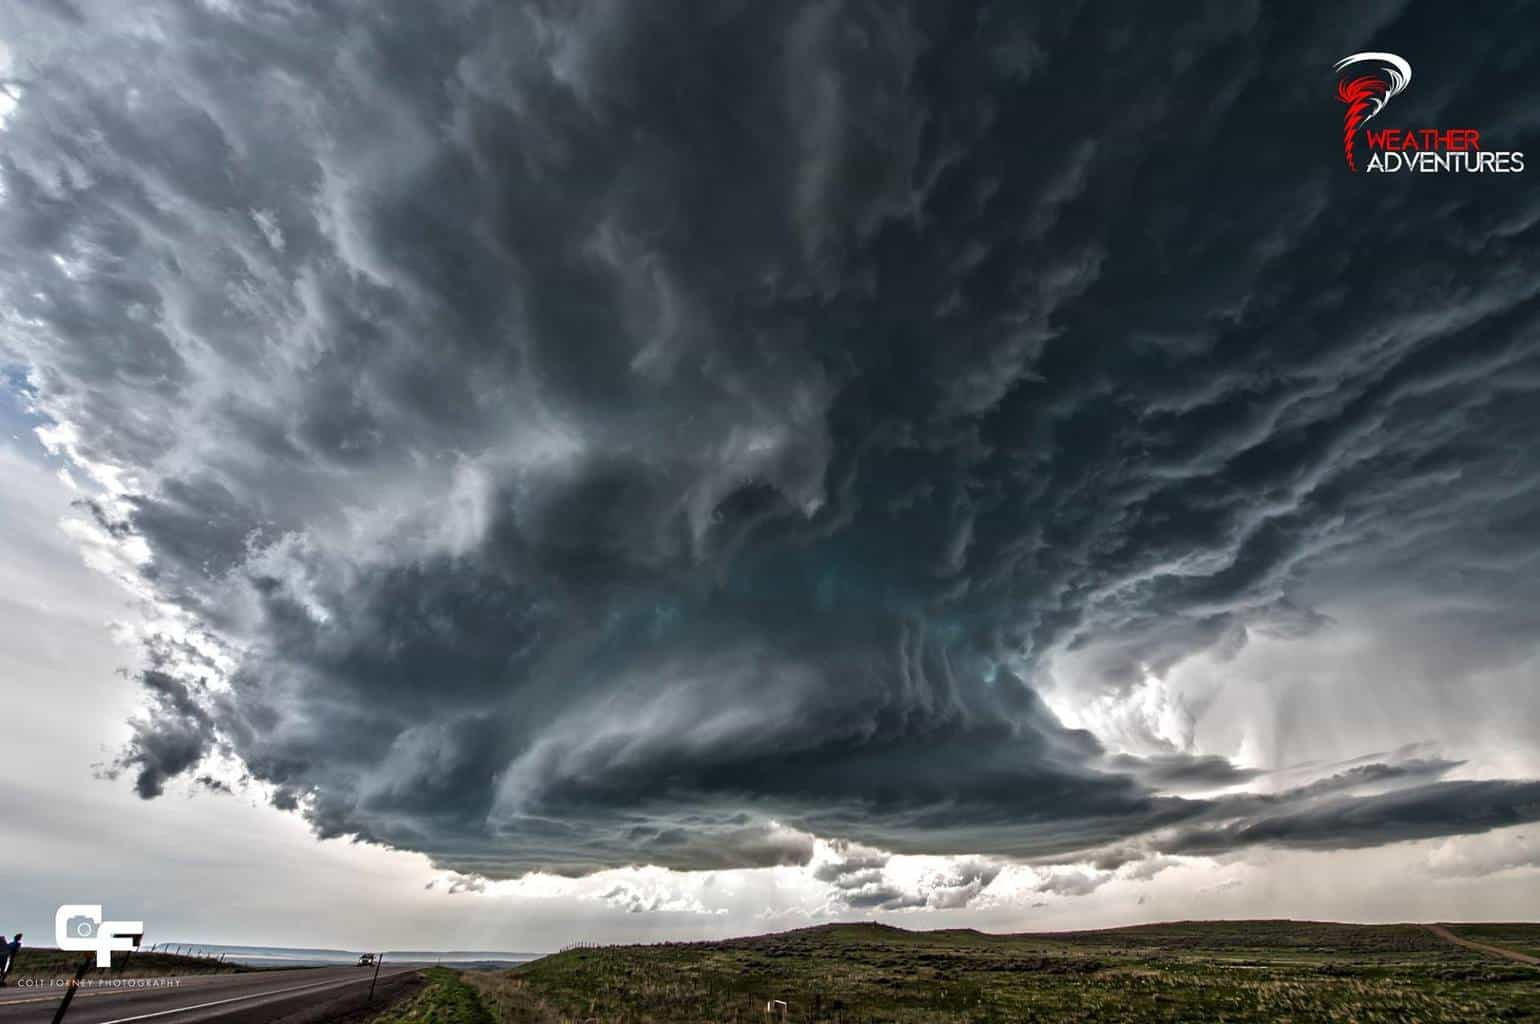 May 18, 2014 Wright, WY As this supercell rapidly intensified, it acquired some epic structure!